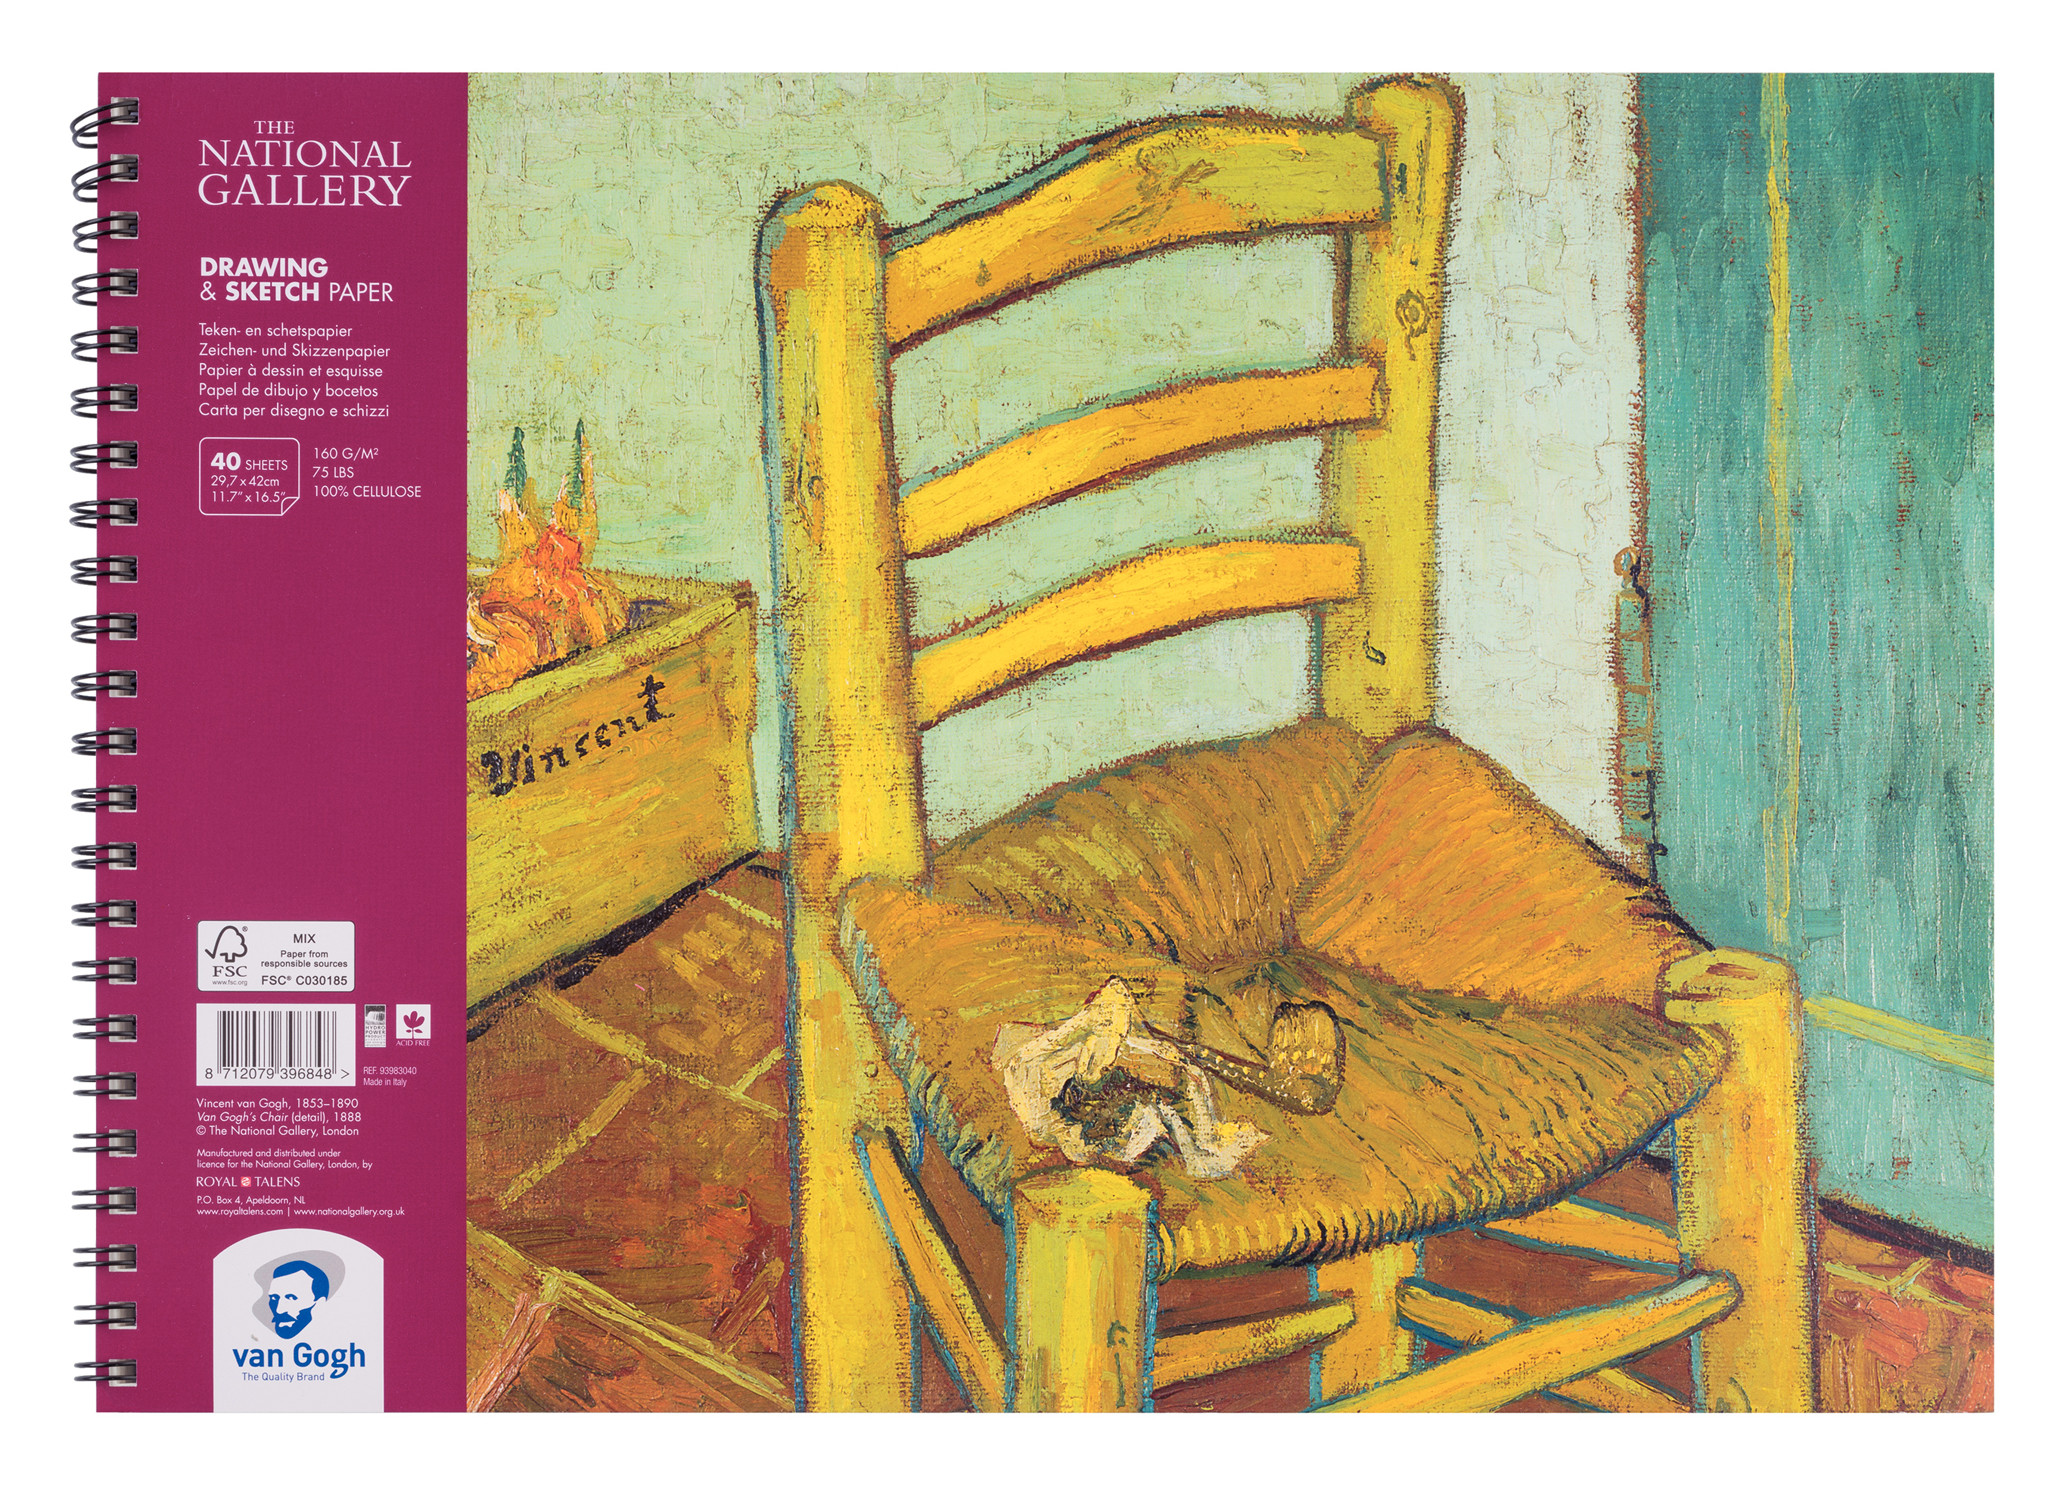 Van Gogh The National Gallery Drawing & Sketch Paper Spiral Bound Pad, 40 Sheets, 160g/75lb., size 42 x 29.7cm (A3) / 11.7 x 16.5